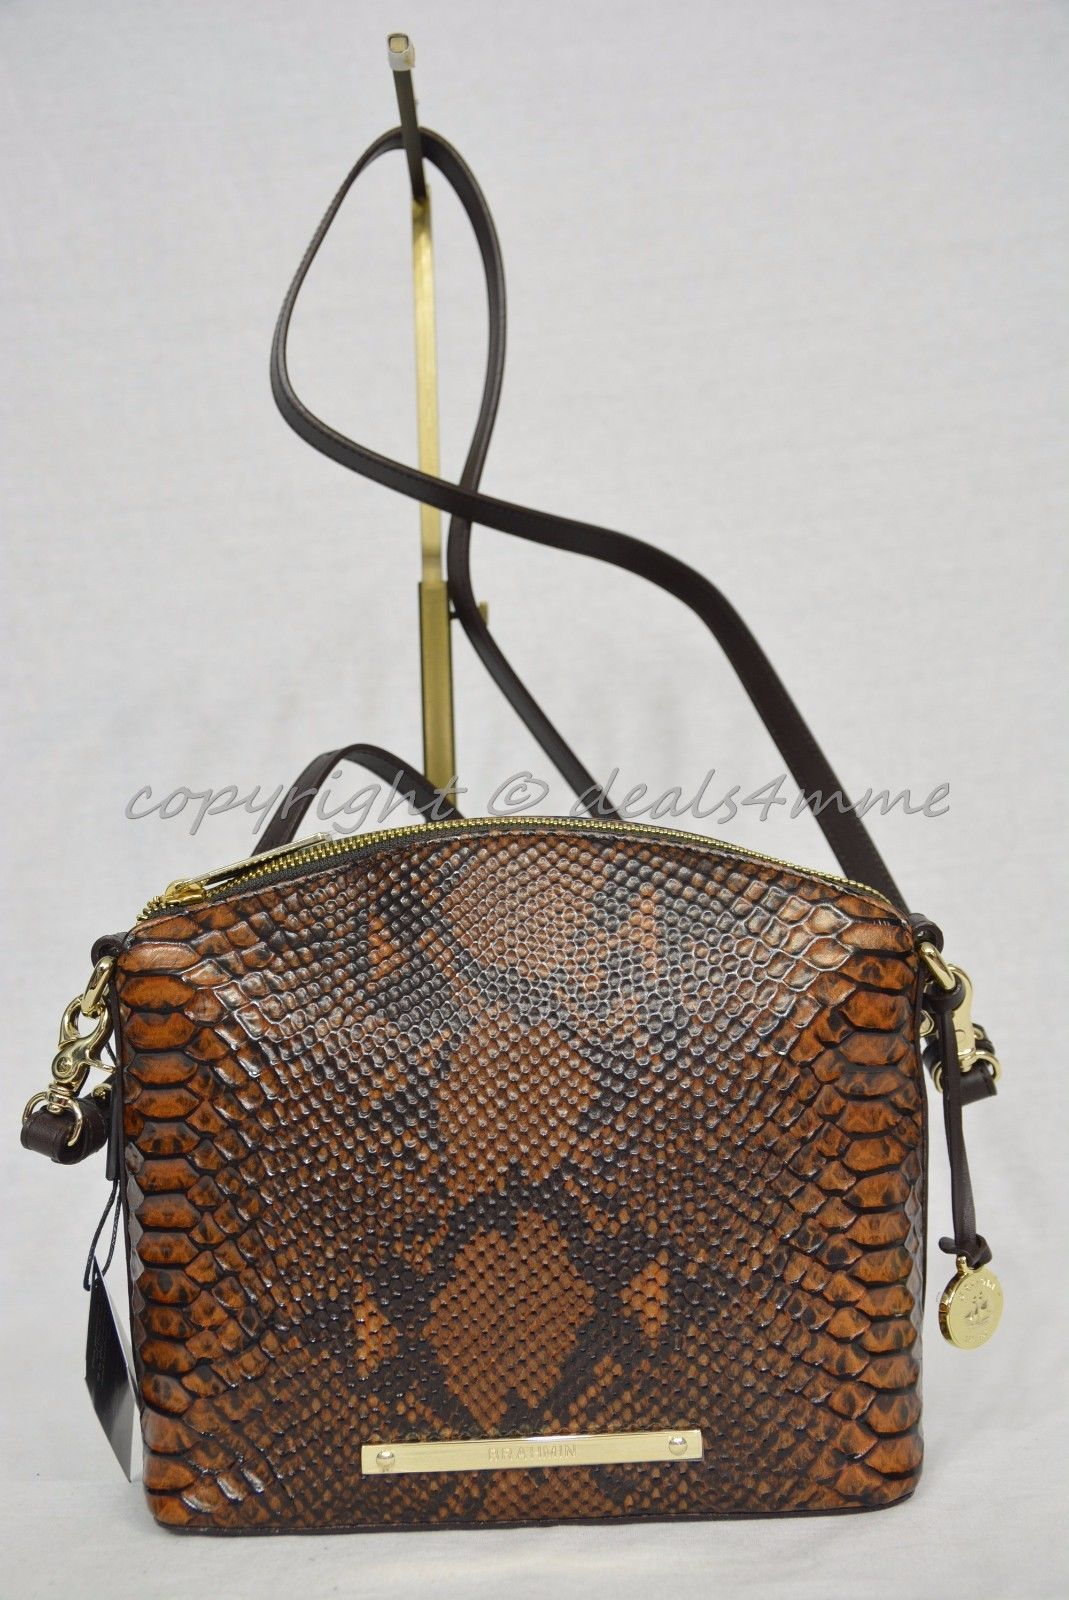 NWT Brahmin Mini Duxbury Shoulder Bag in Tortoise Seville Brown Embossed Leather image 2